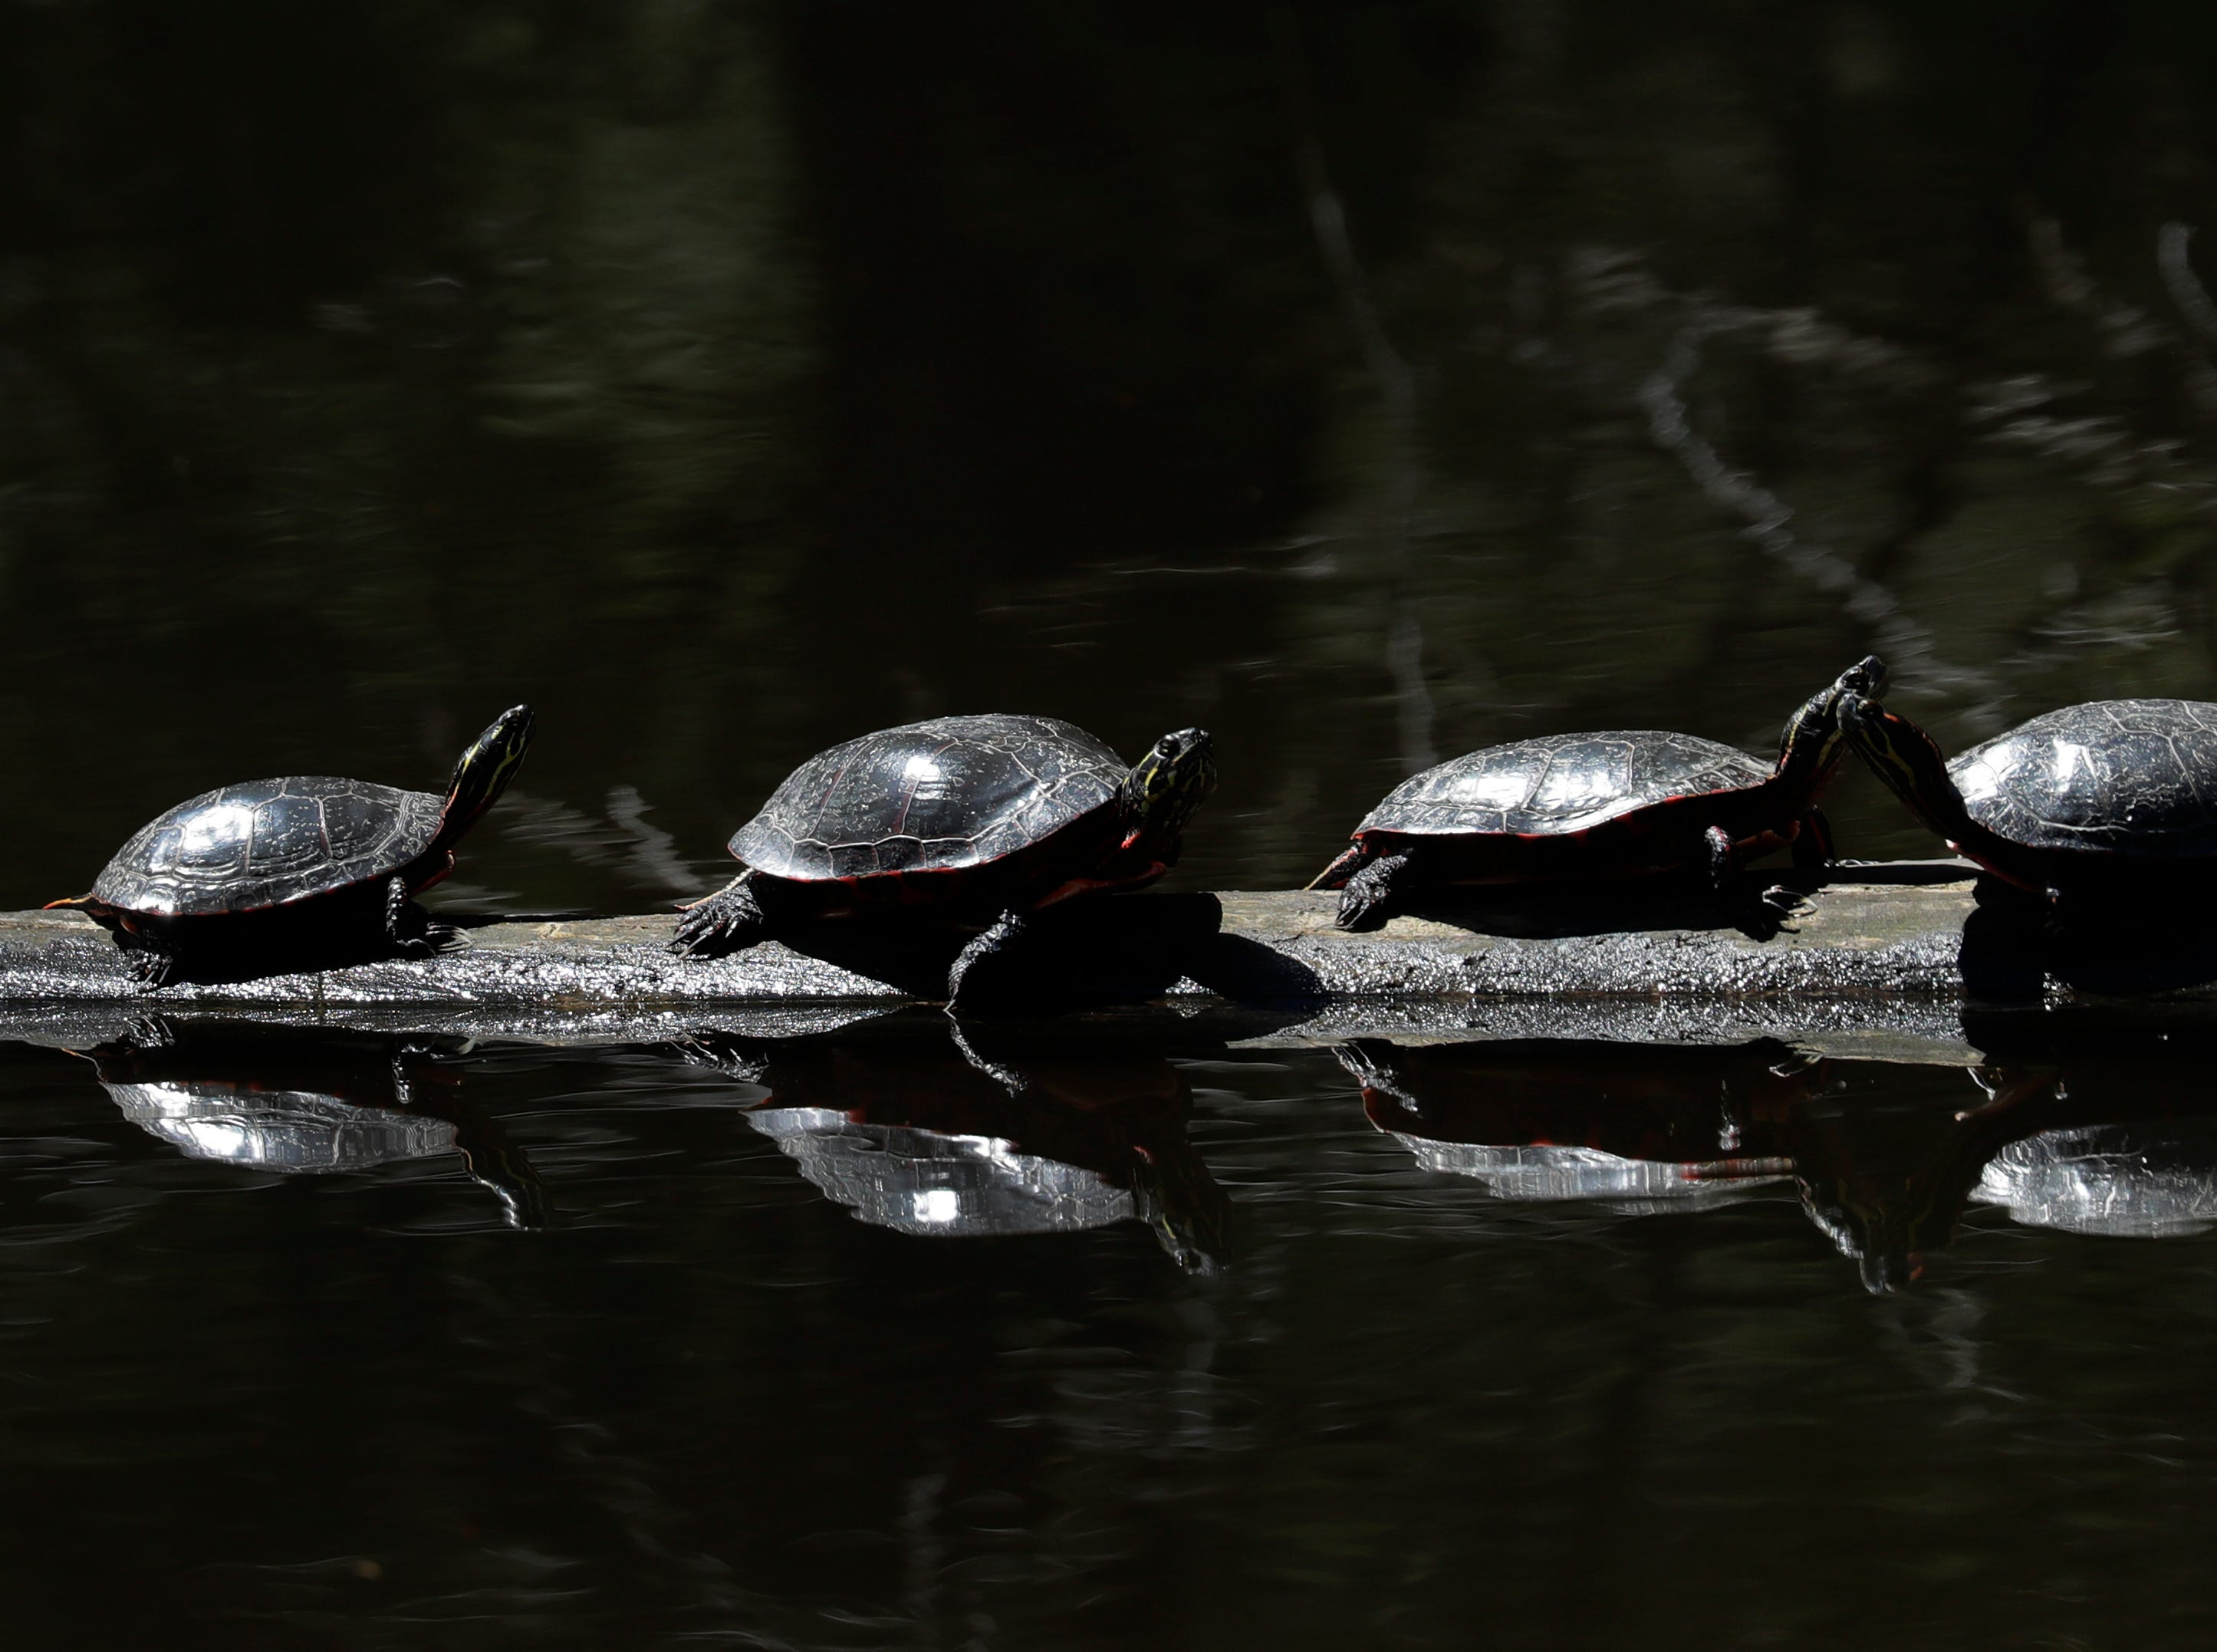 A group of turtles bask in the sun Friday, May 10, 2019, at the Rydell Conservancy in Fox Crossing, Wis. 